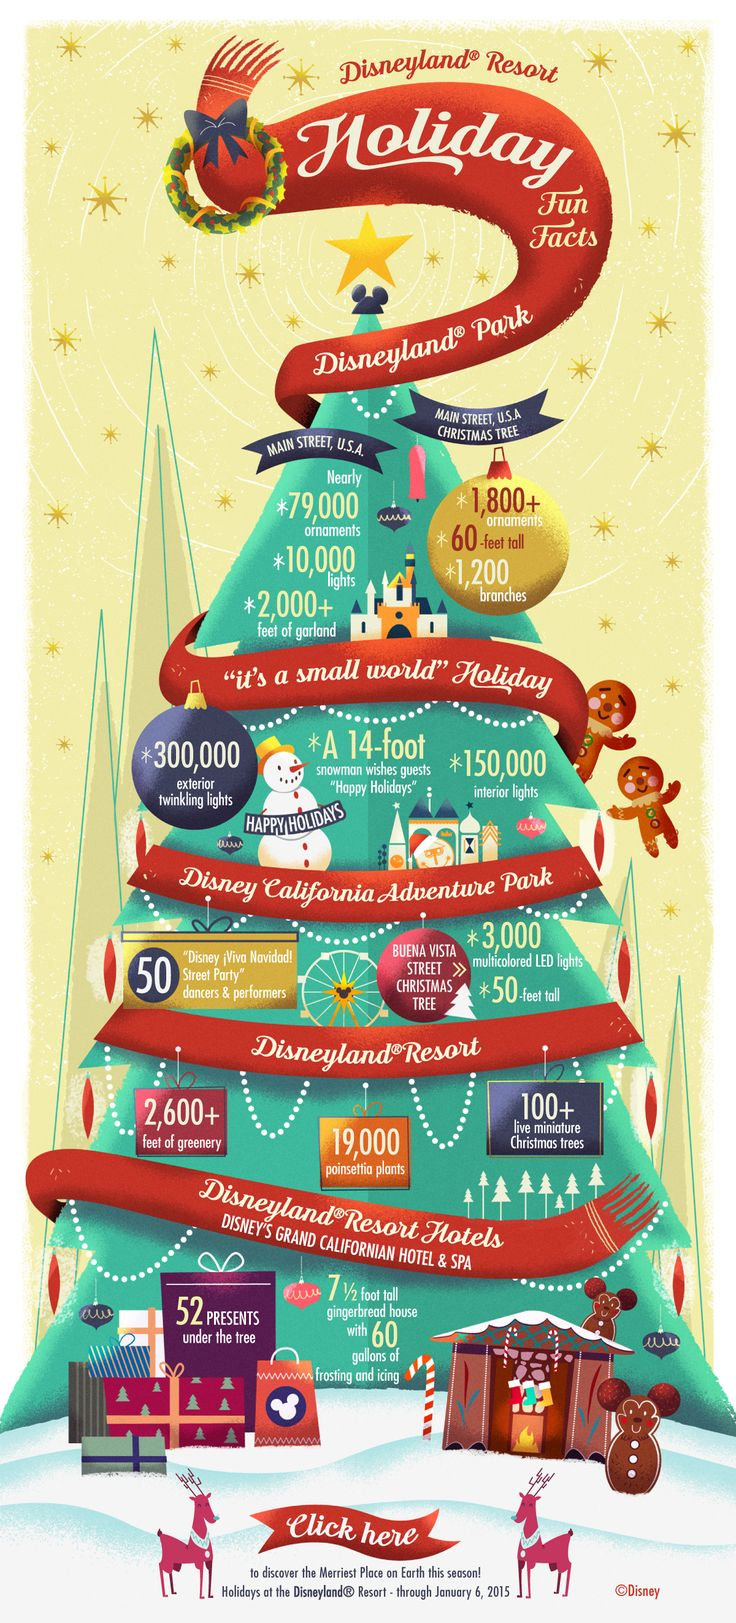 Fun Facts about the Holidays at Disneyland Resort!